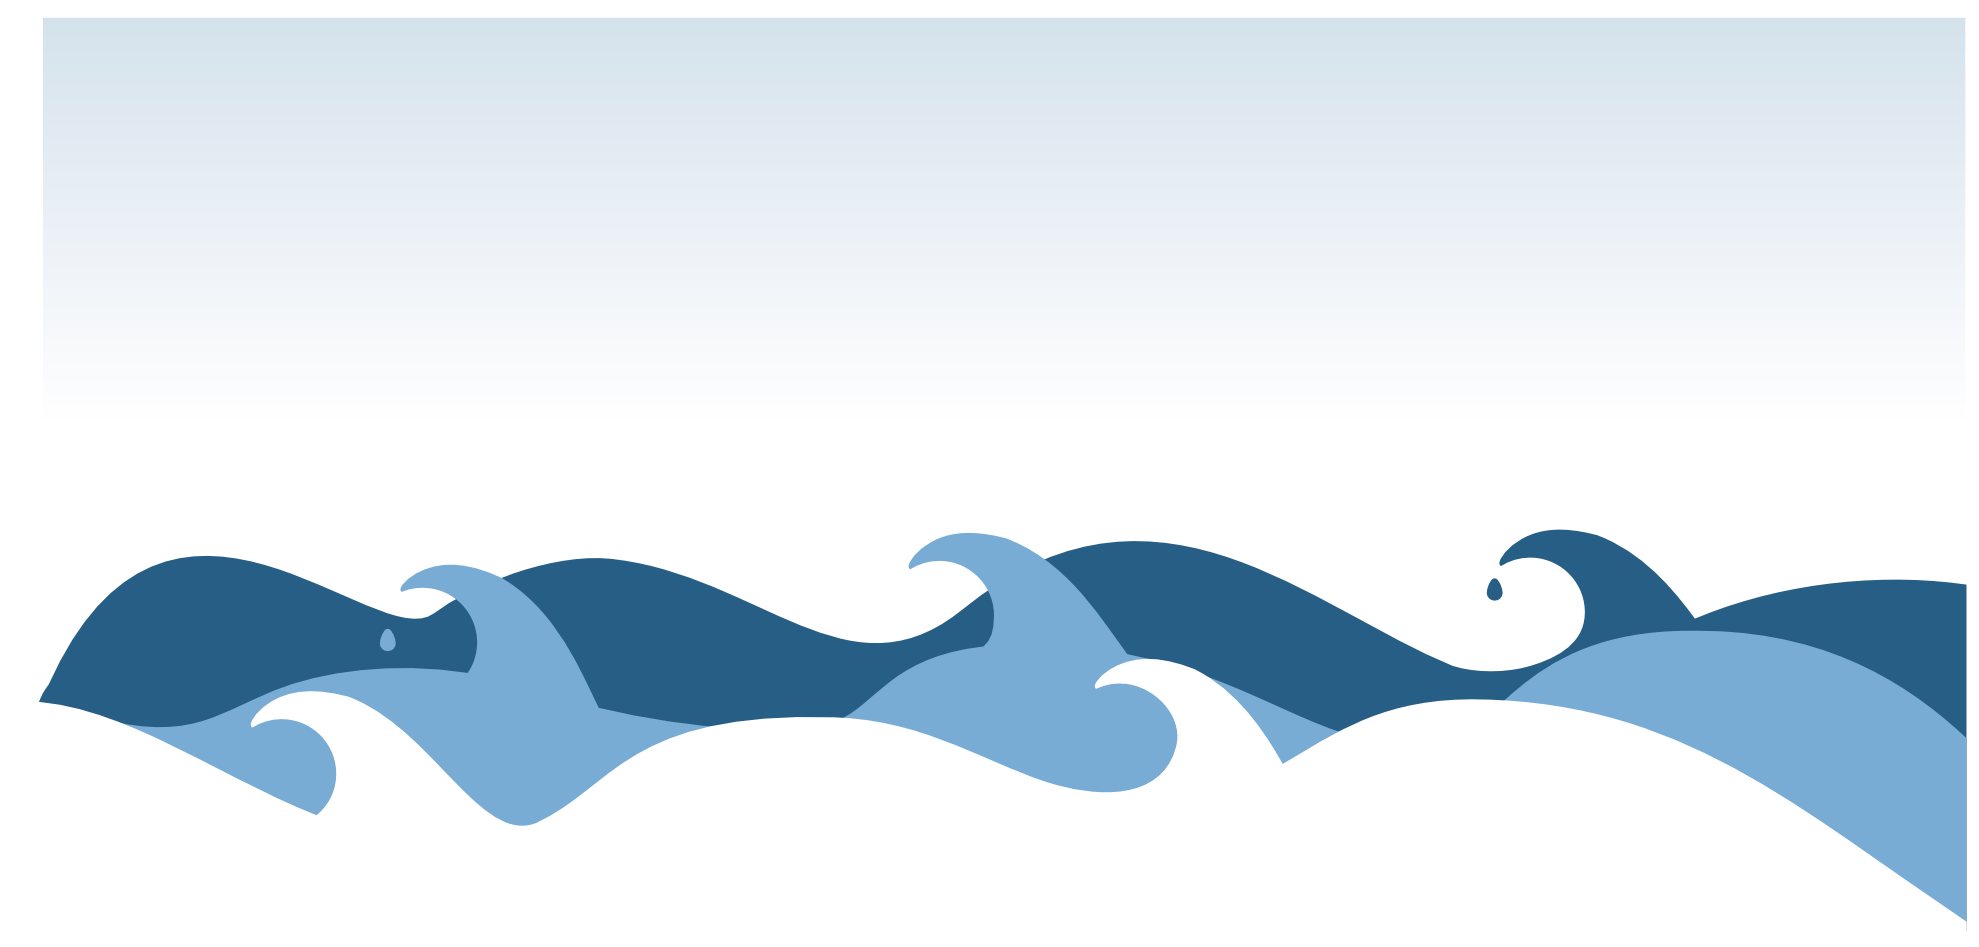 Free Ocean Waves Cliparts, Download Free Clip Art, Free Clip.